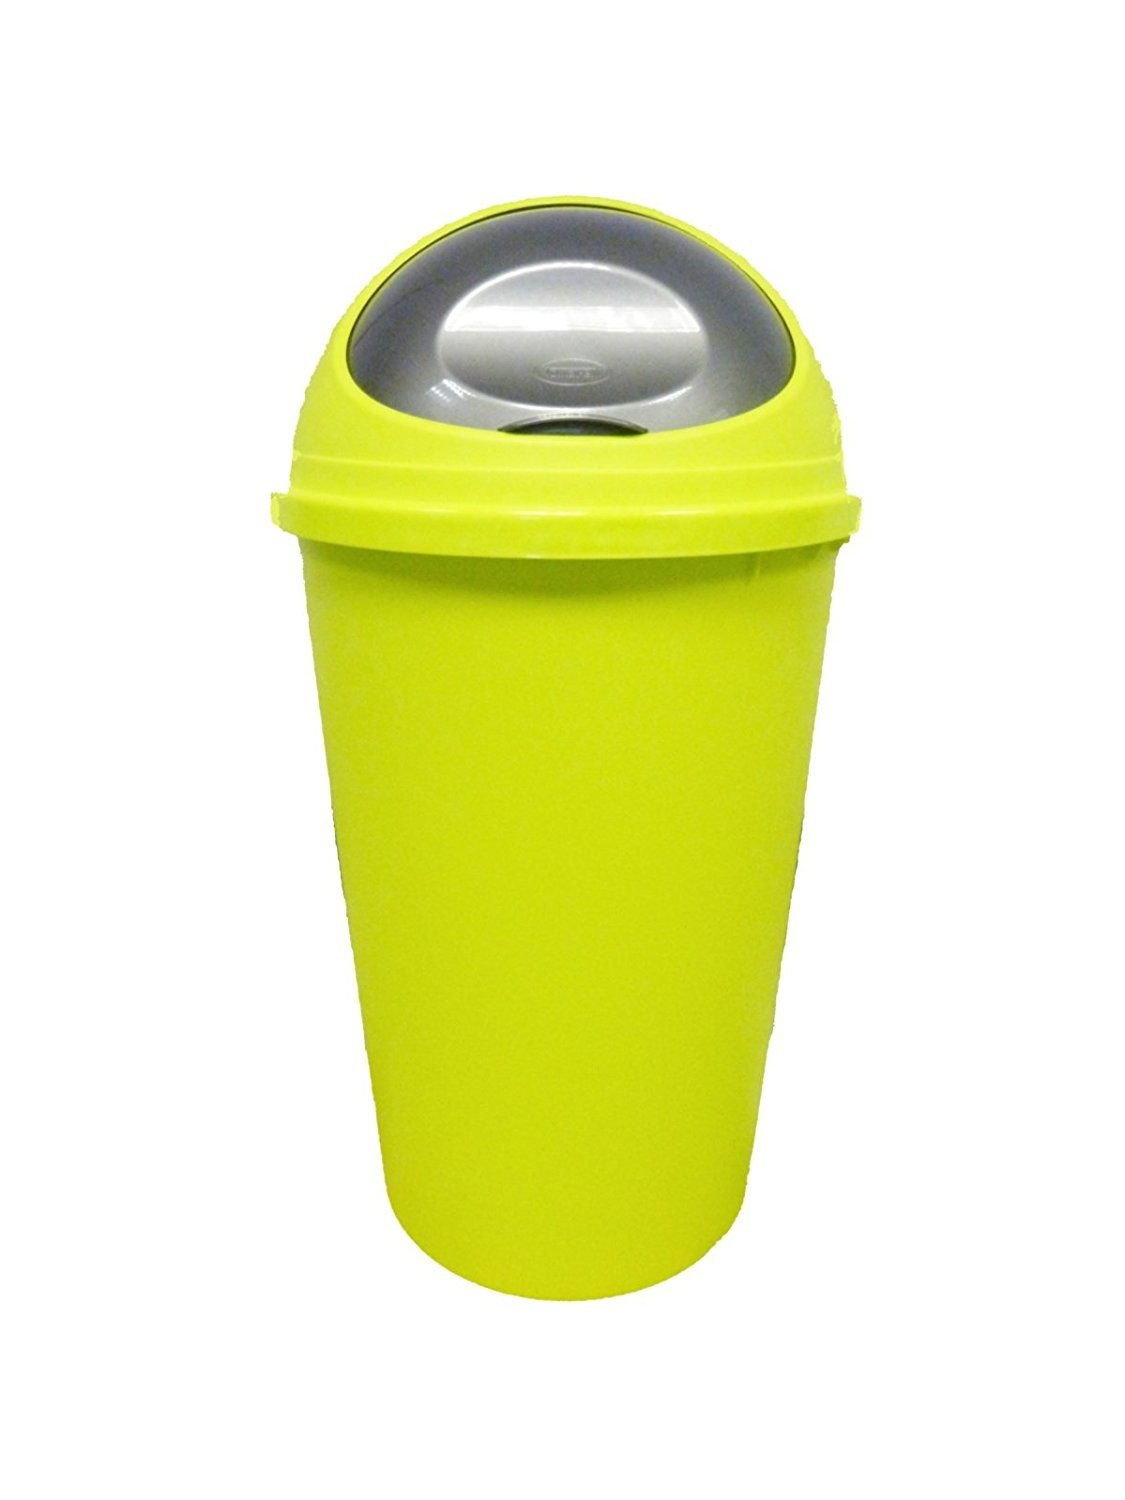 Lime Green Kitchen Canisters 5 Piece Kitchen Jars Storage Cannisters Bread Bin Tea Coffee Sugar